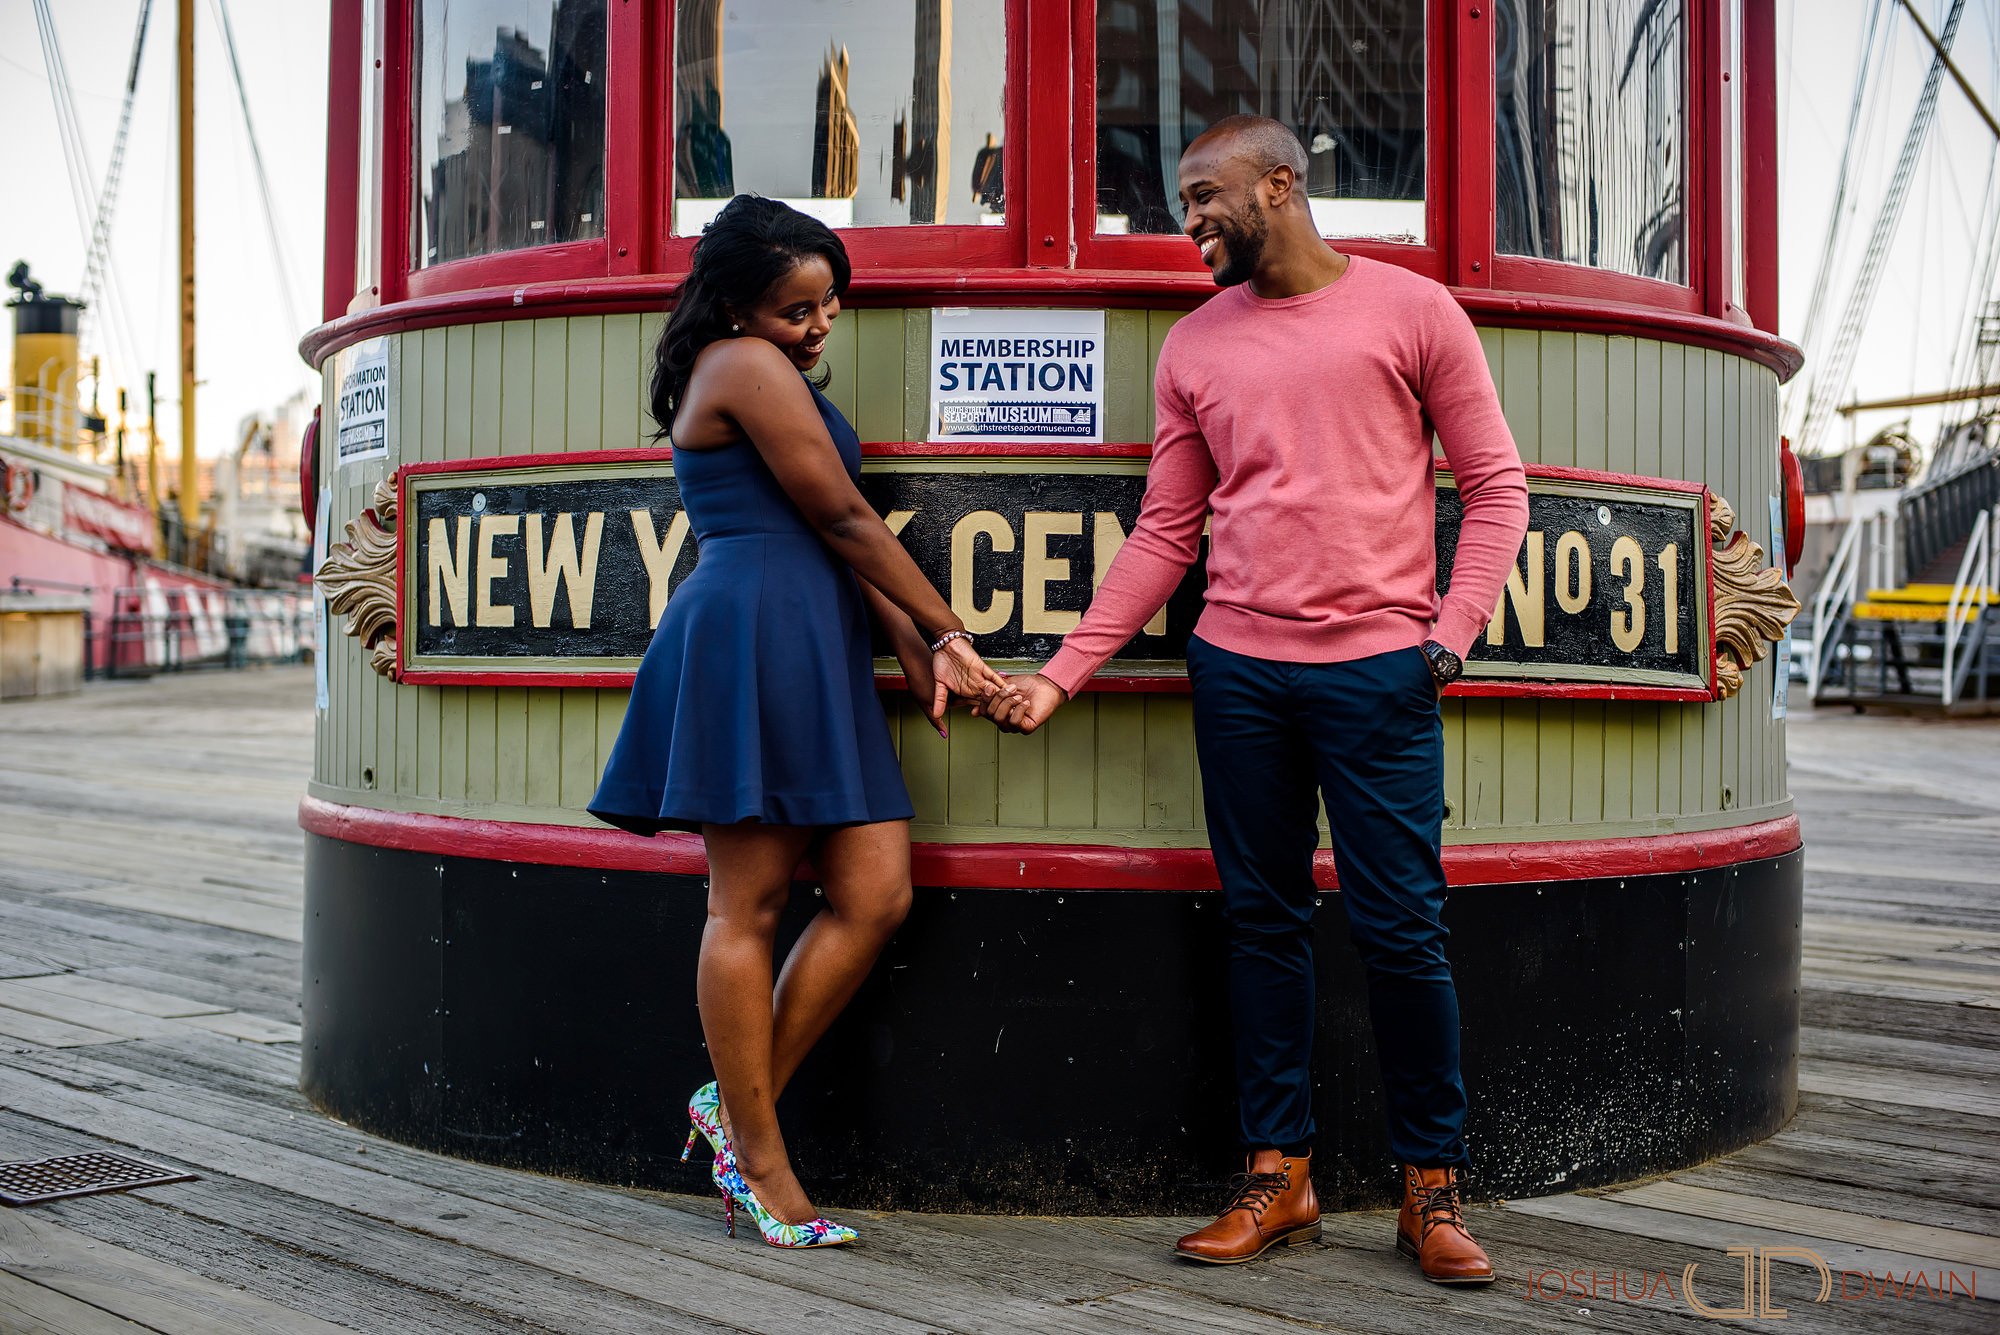 carline-don-002-south-street-seaport-nyc-engagement-photos-joshua-dwain